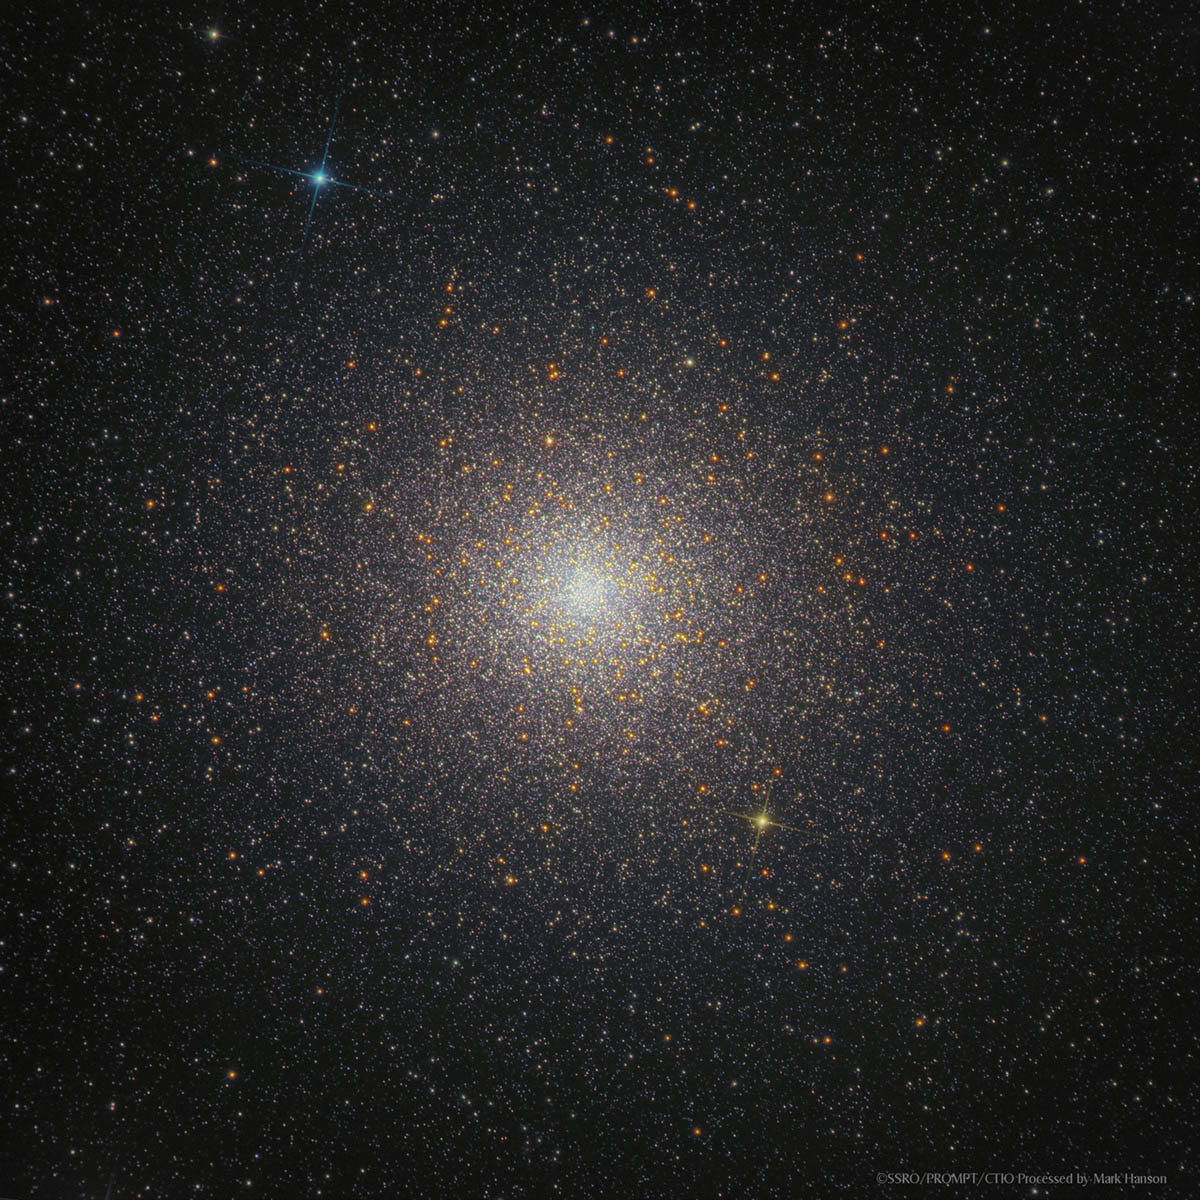 47 Tucanae or NGC 104